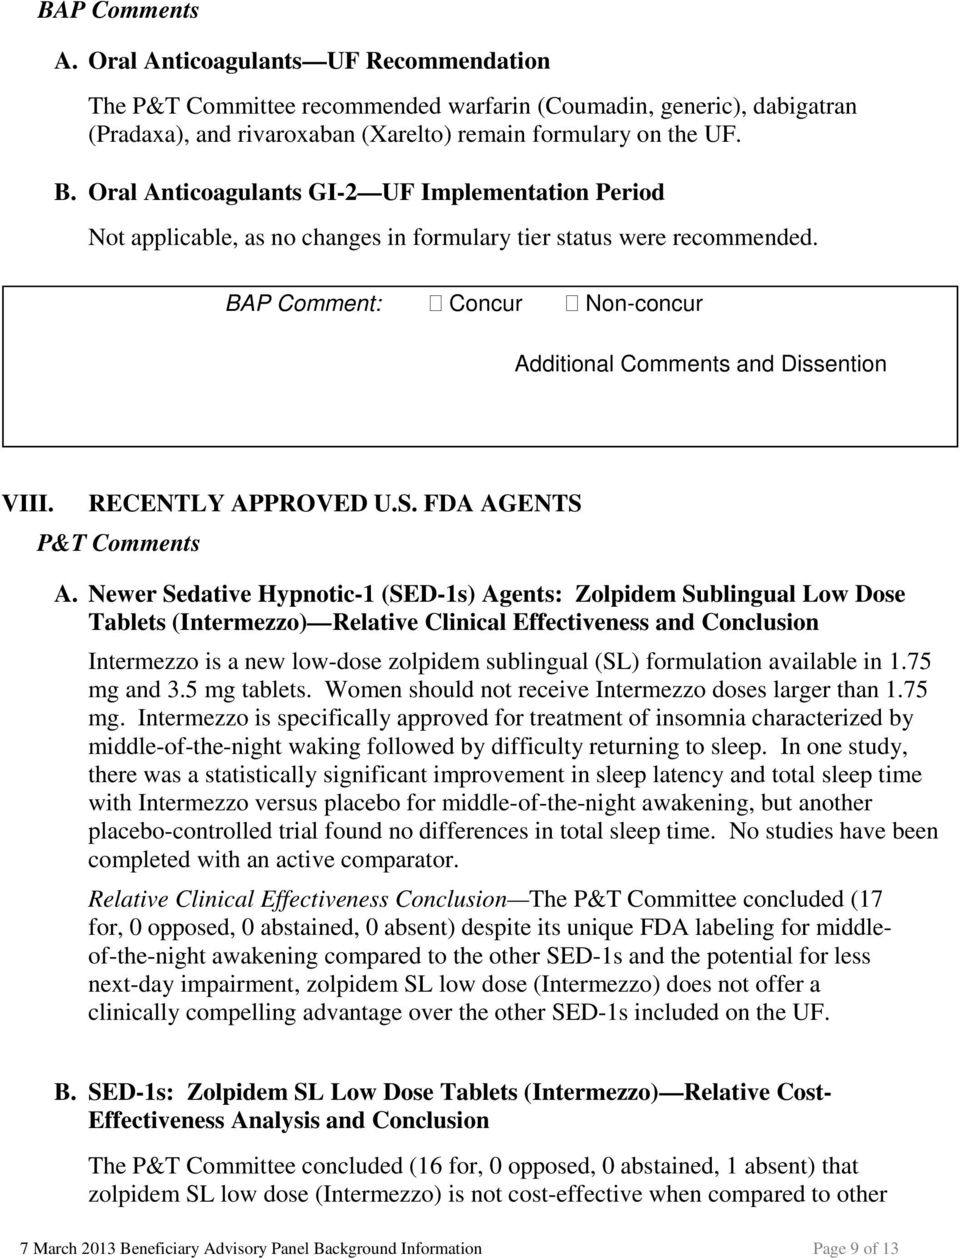 Newer Sedative Hypnotic-1 (SED-1s) Agents: Zolpidem Sublingual Low Dose Tablets (Intermezzo) Relative Clinical Effectiveness and Conclusion Intermezzo is a new low-dose zolpidem sublingual (SL)